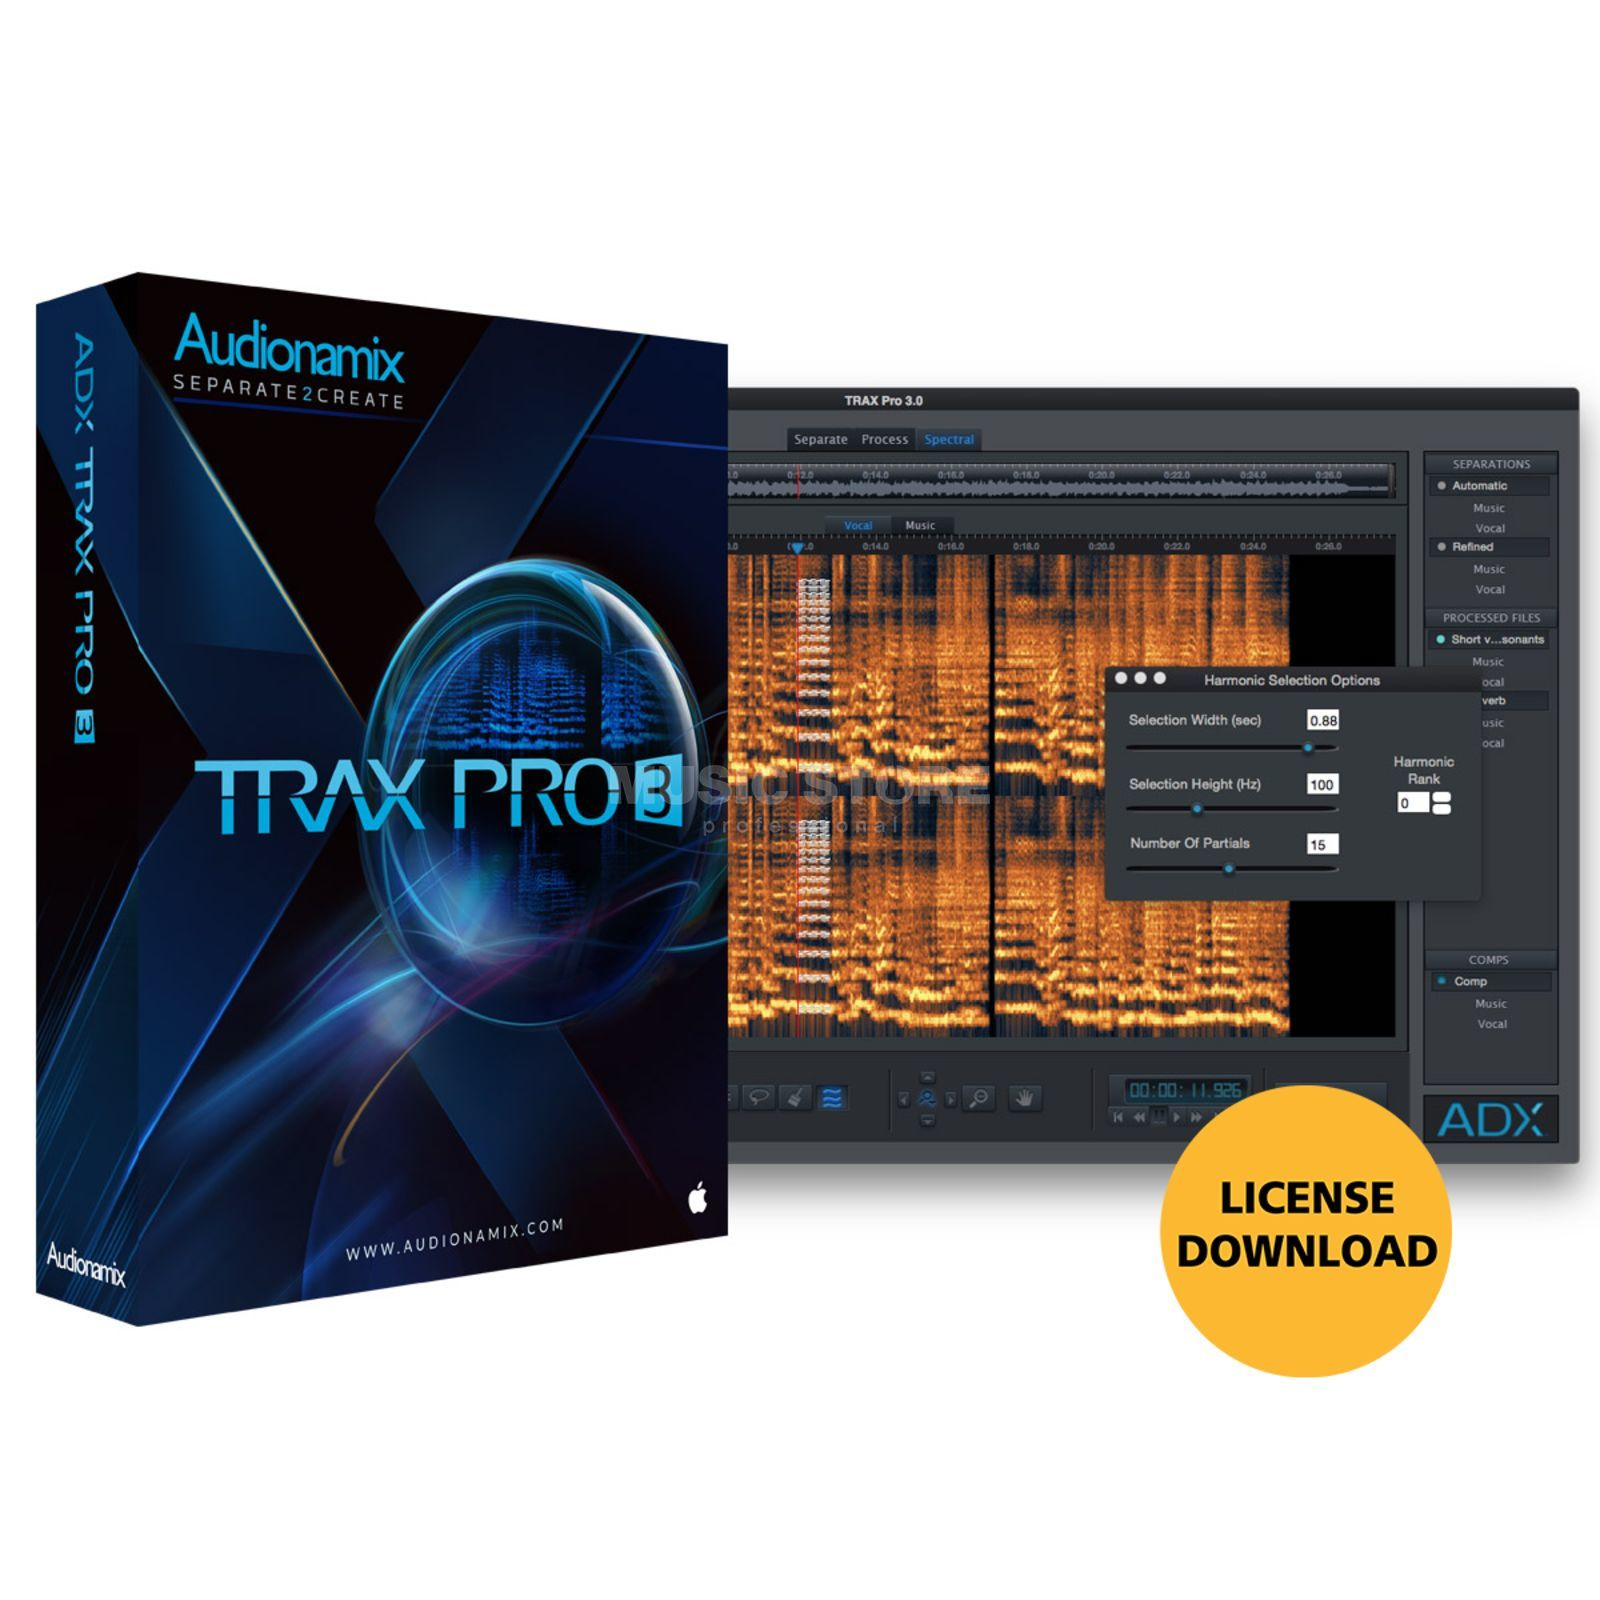 AUDIONAMIX INC. TRAX PRO License Code Product Image